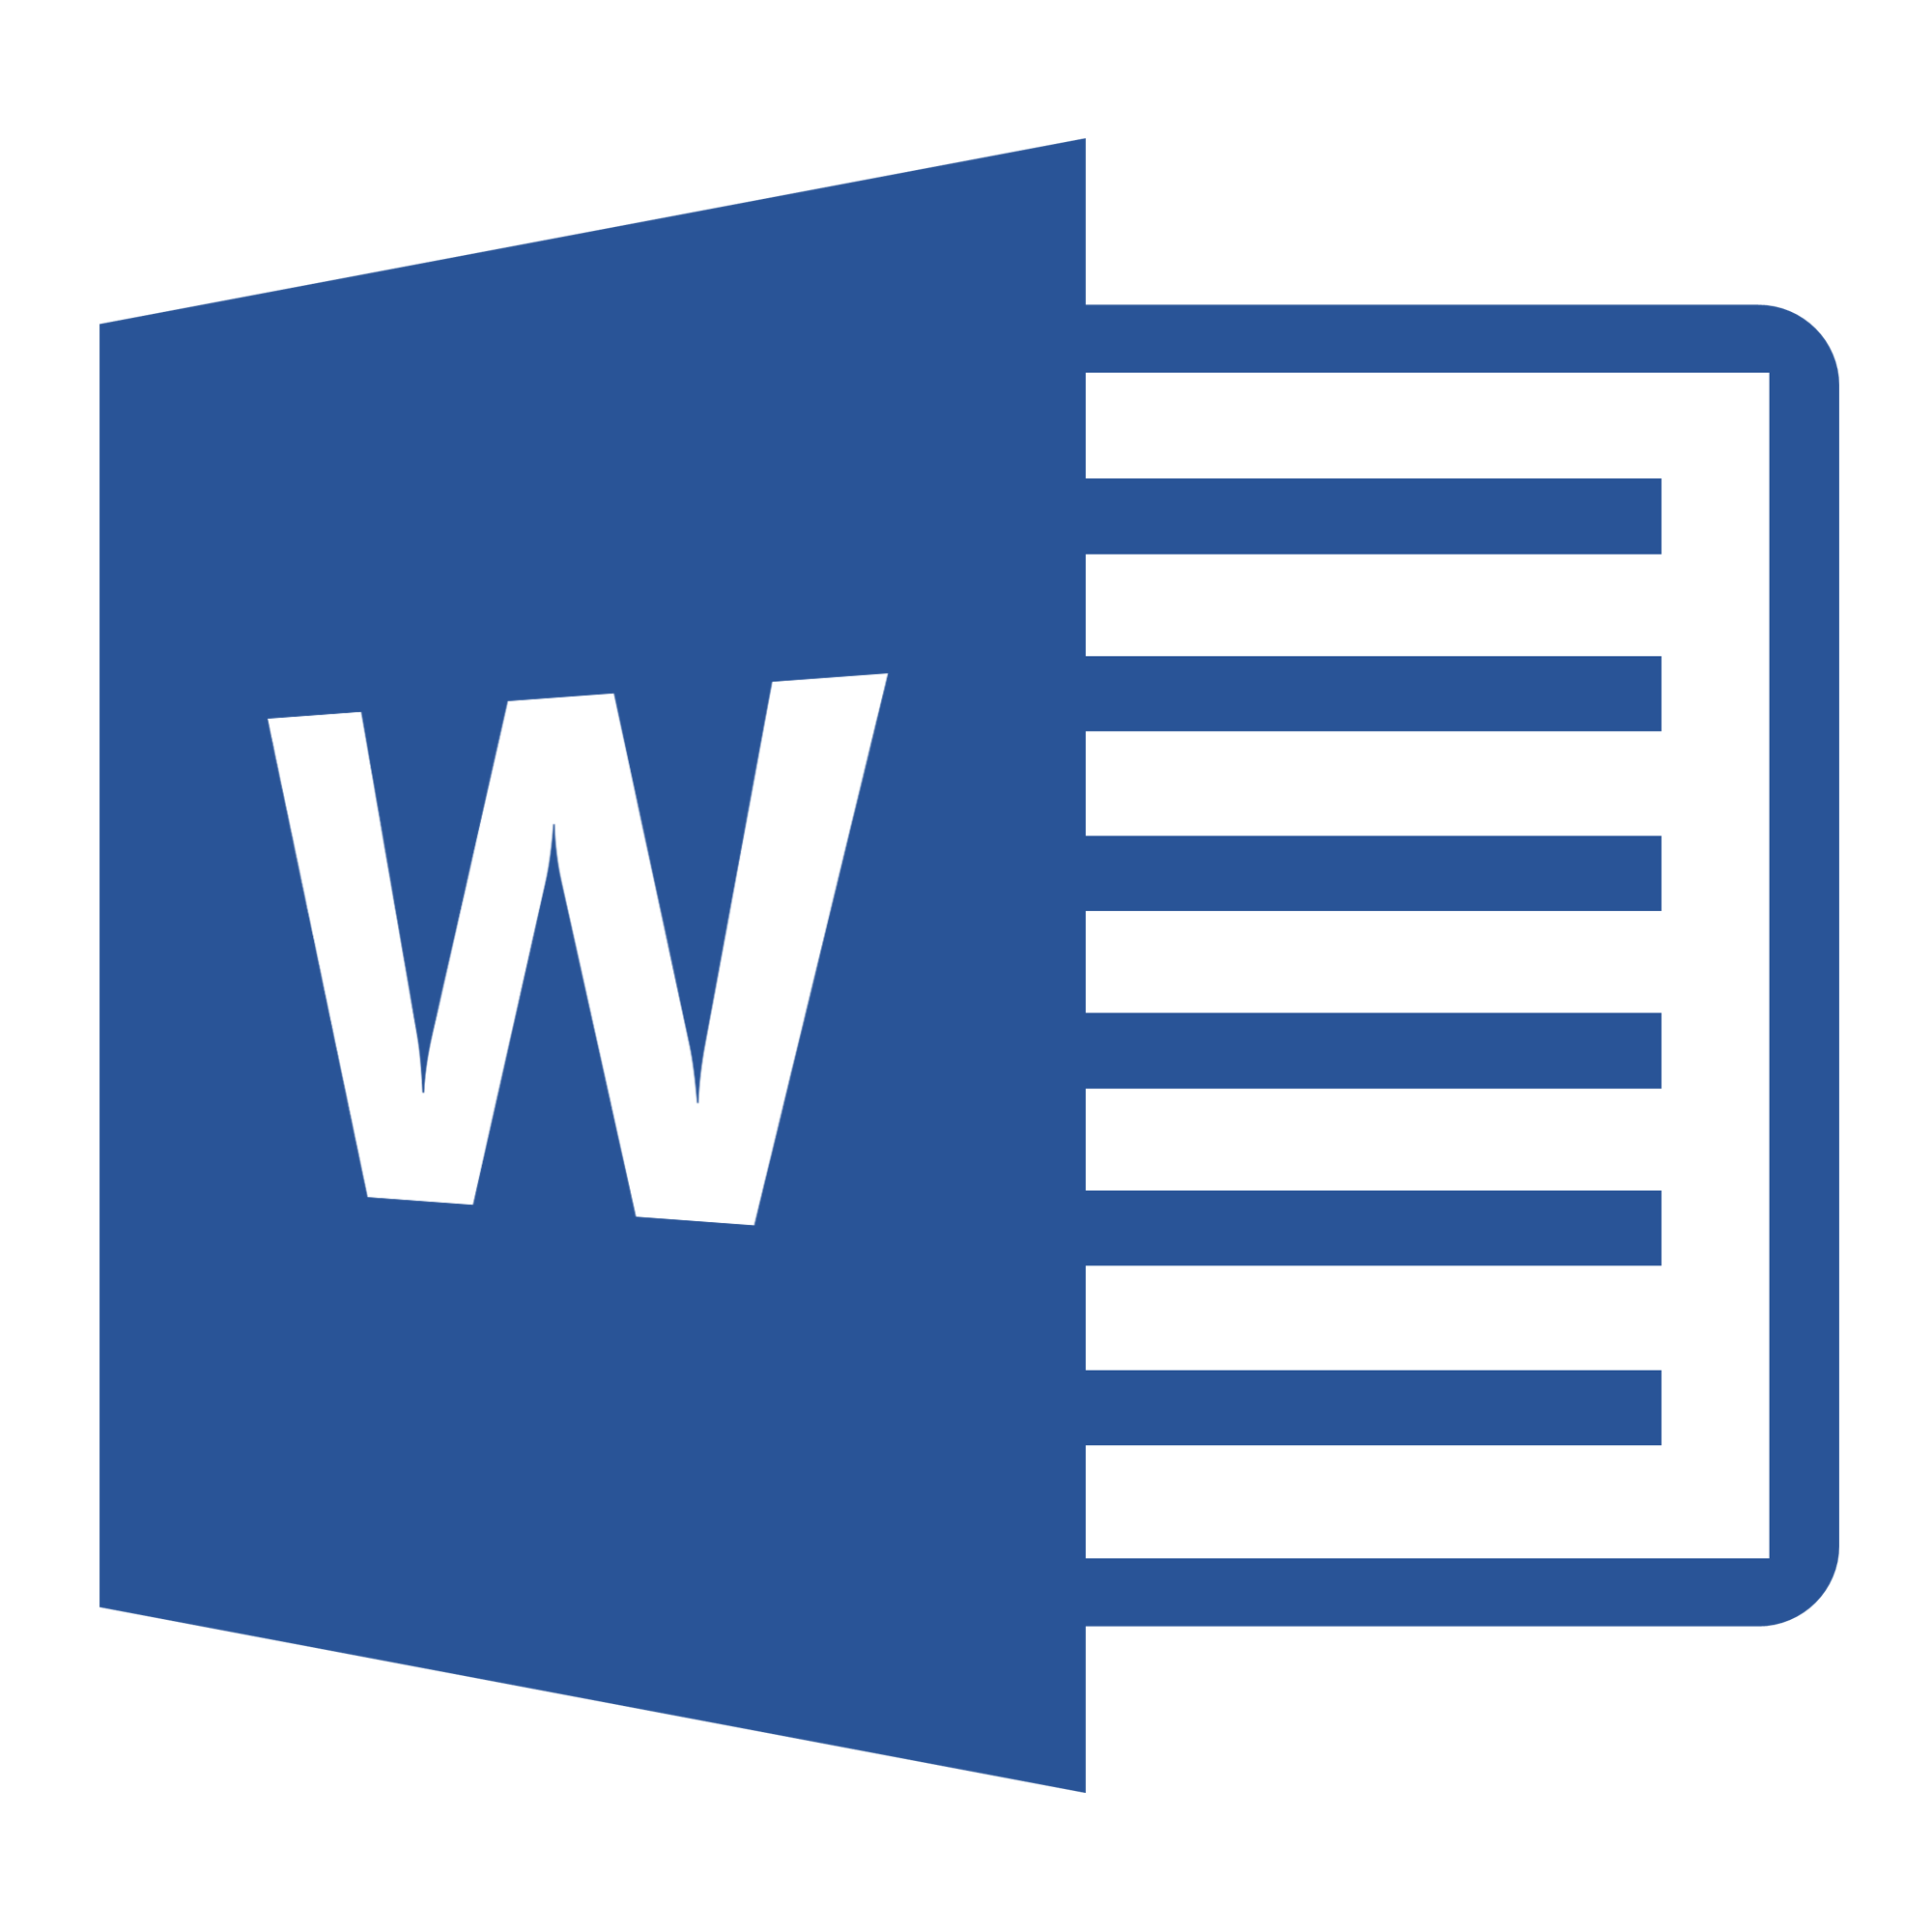 Word document download image